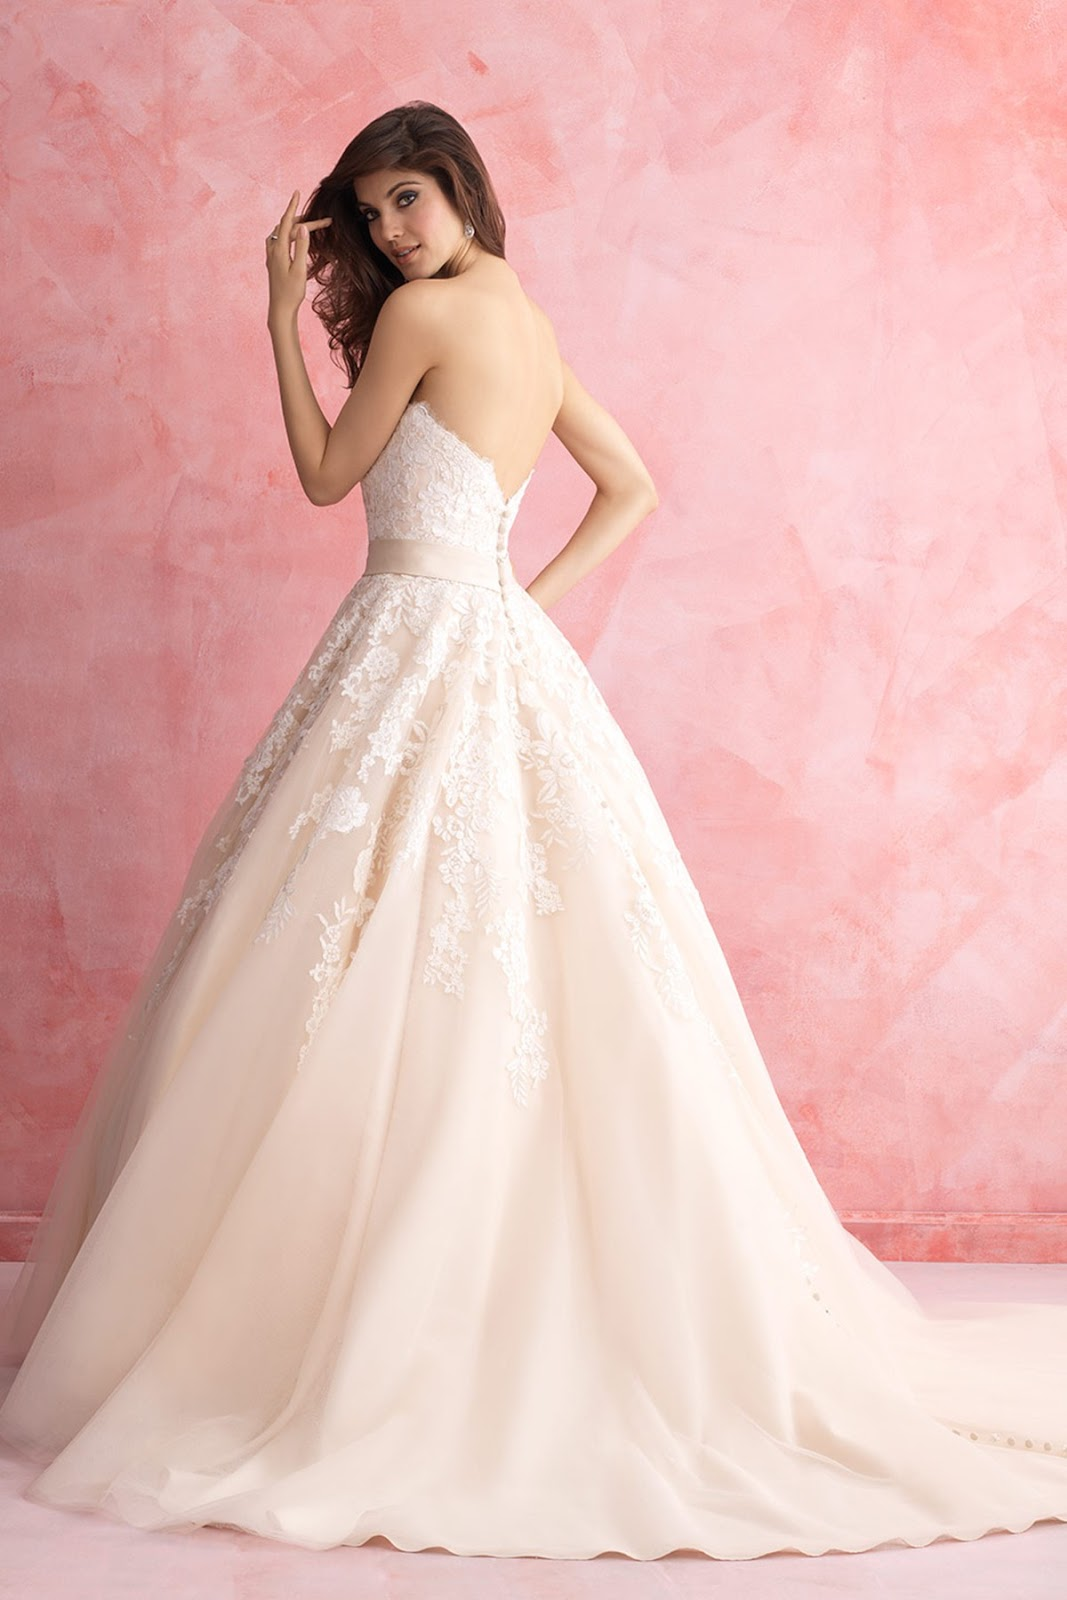 Fashion Inspiration: Whimsical Wedding Gowns from Landybridal ...